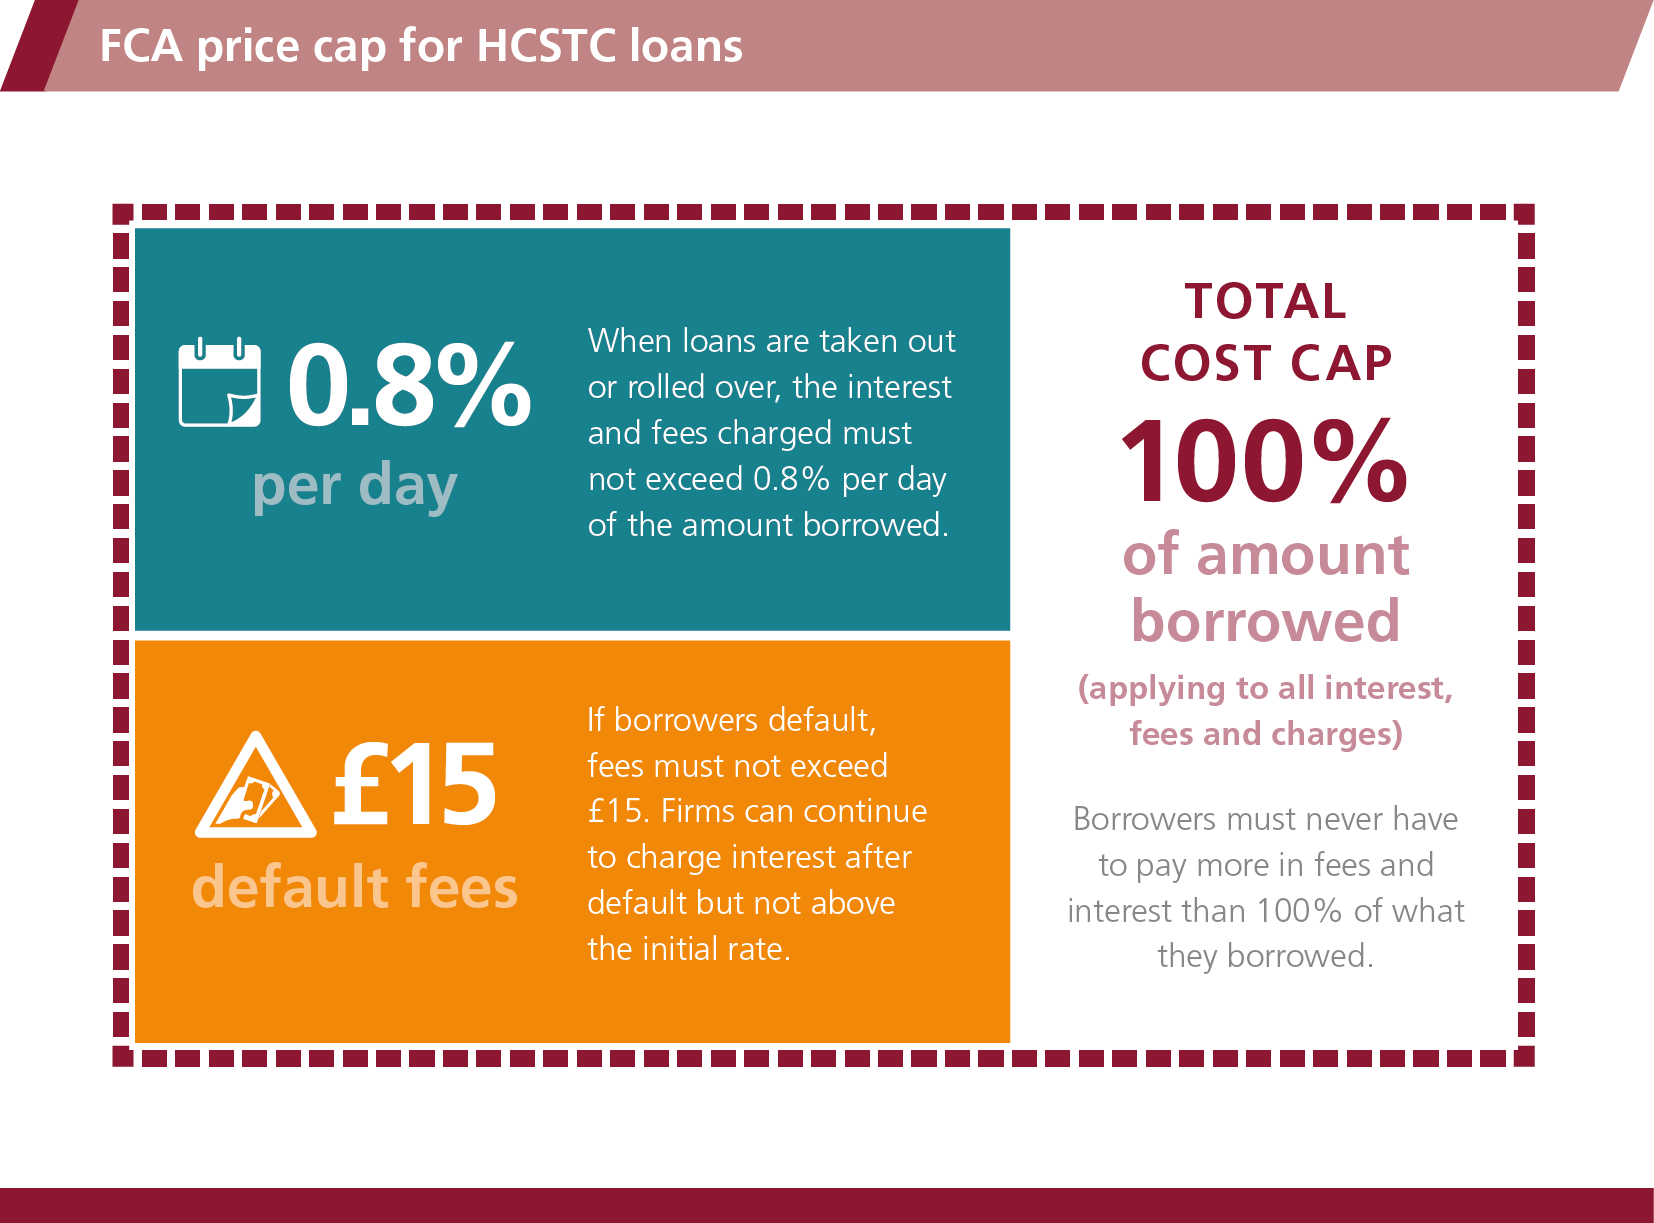 FCA price cap for HCSTC loans, download PDF